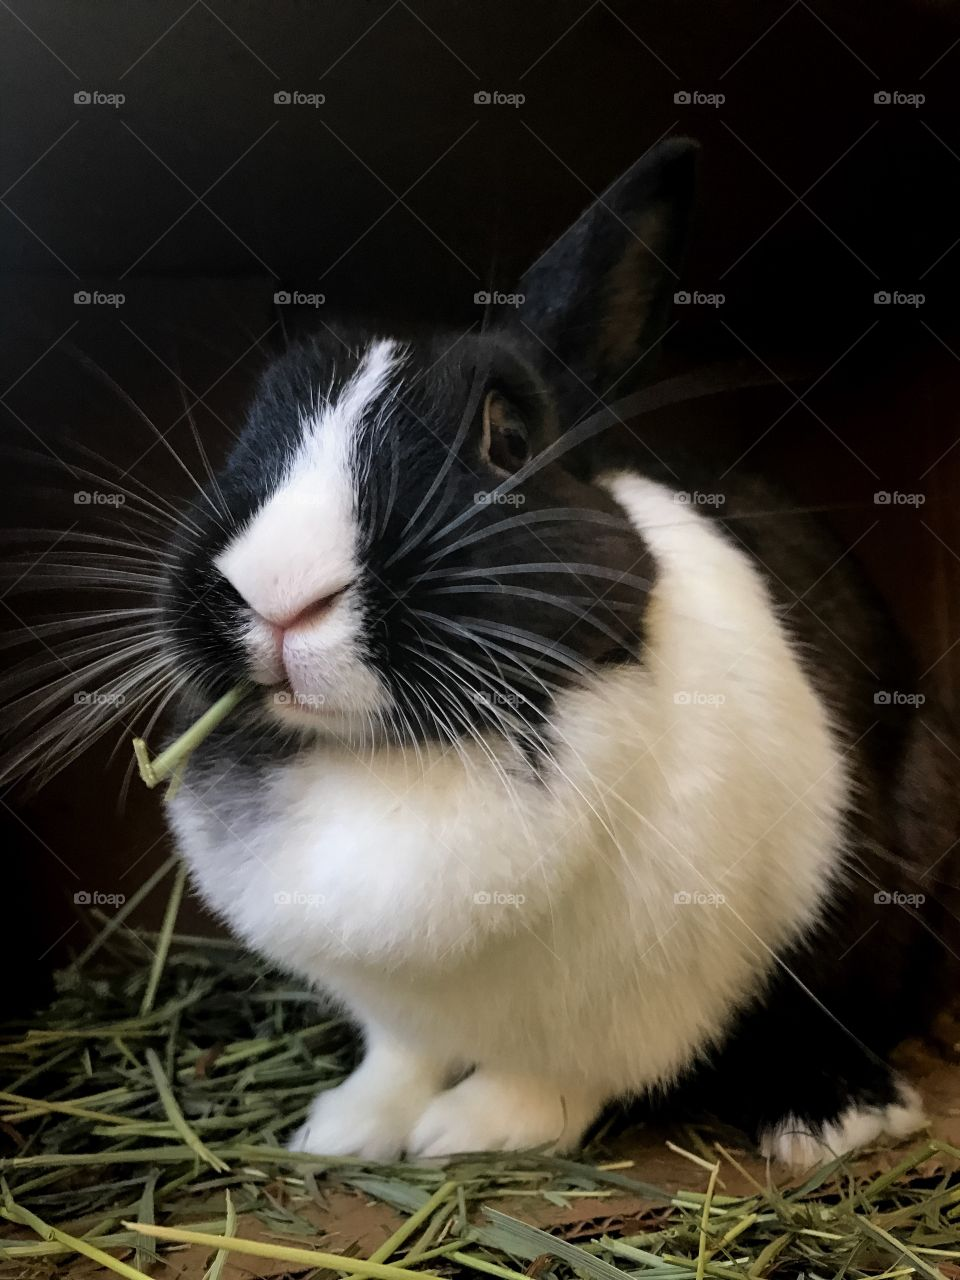 Rabbit eating Timothy hay